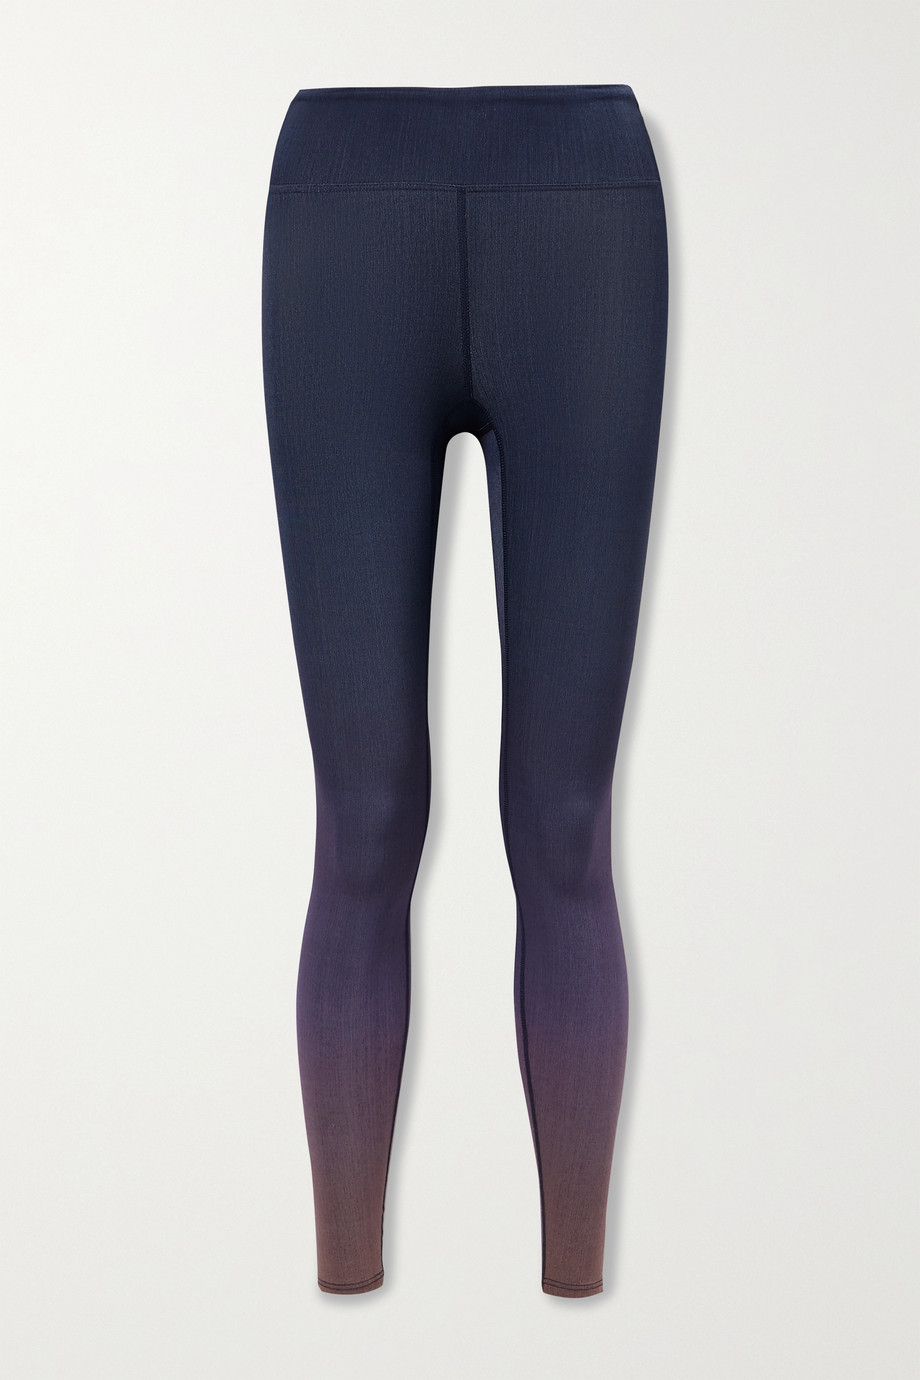 HEROINE SPORT Horizon ombré stretch leggings